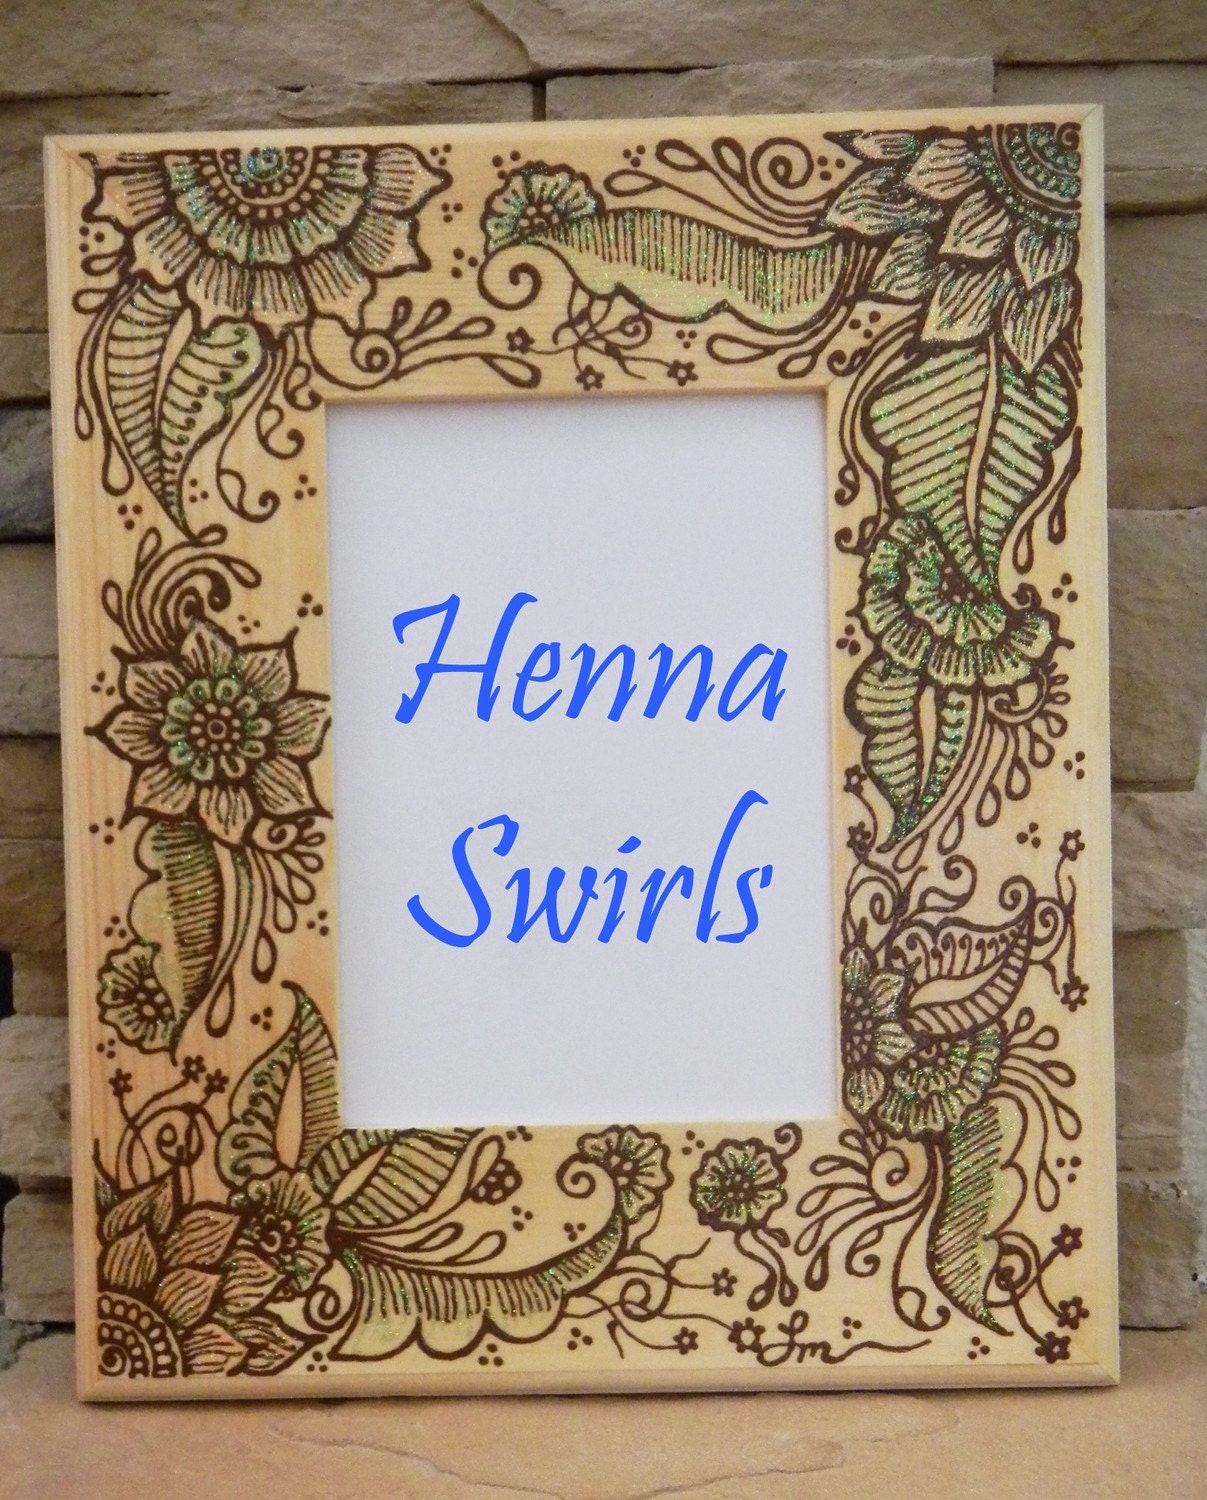 Henna Script: Henna Picture Frame One Of A Kind Original Henna By